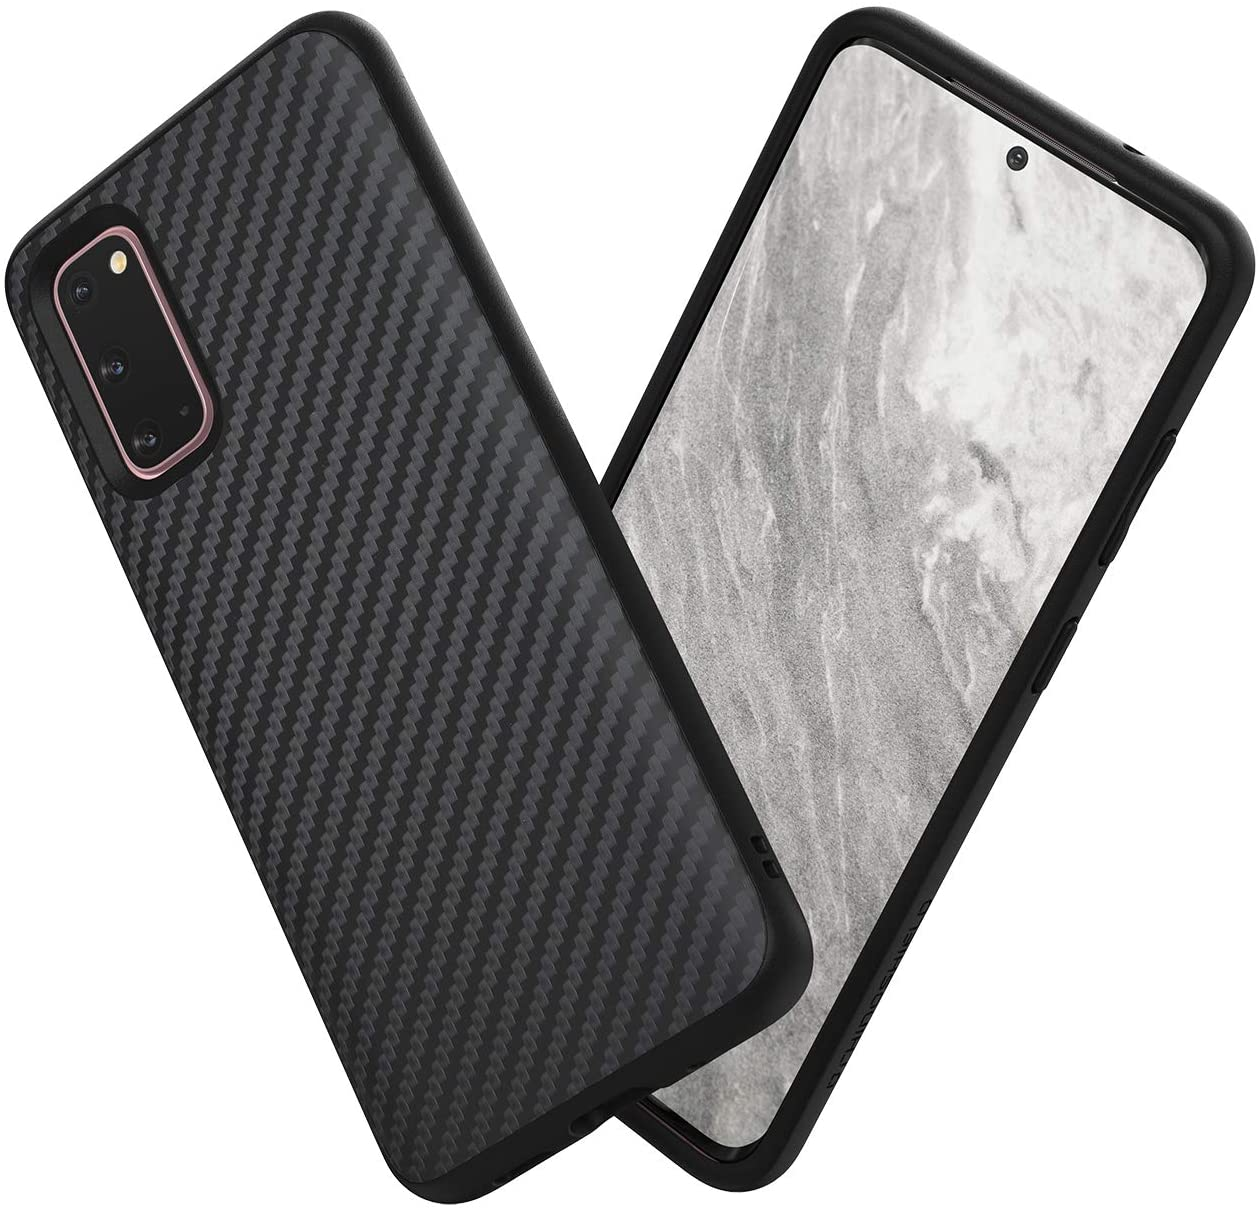 Original RhinoShield SolidSuit Galaxy S20 FE Shock Absorbent Slim Design Protective Cover [3.5M / 11ft Drop Protection]